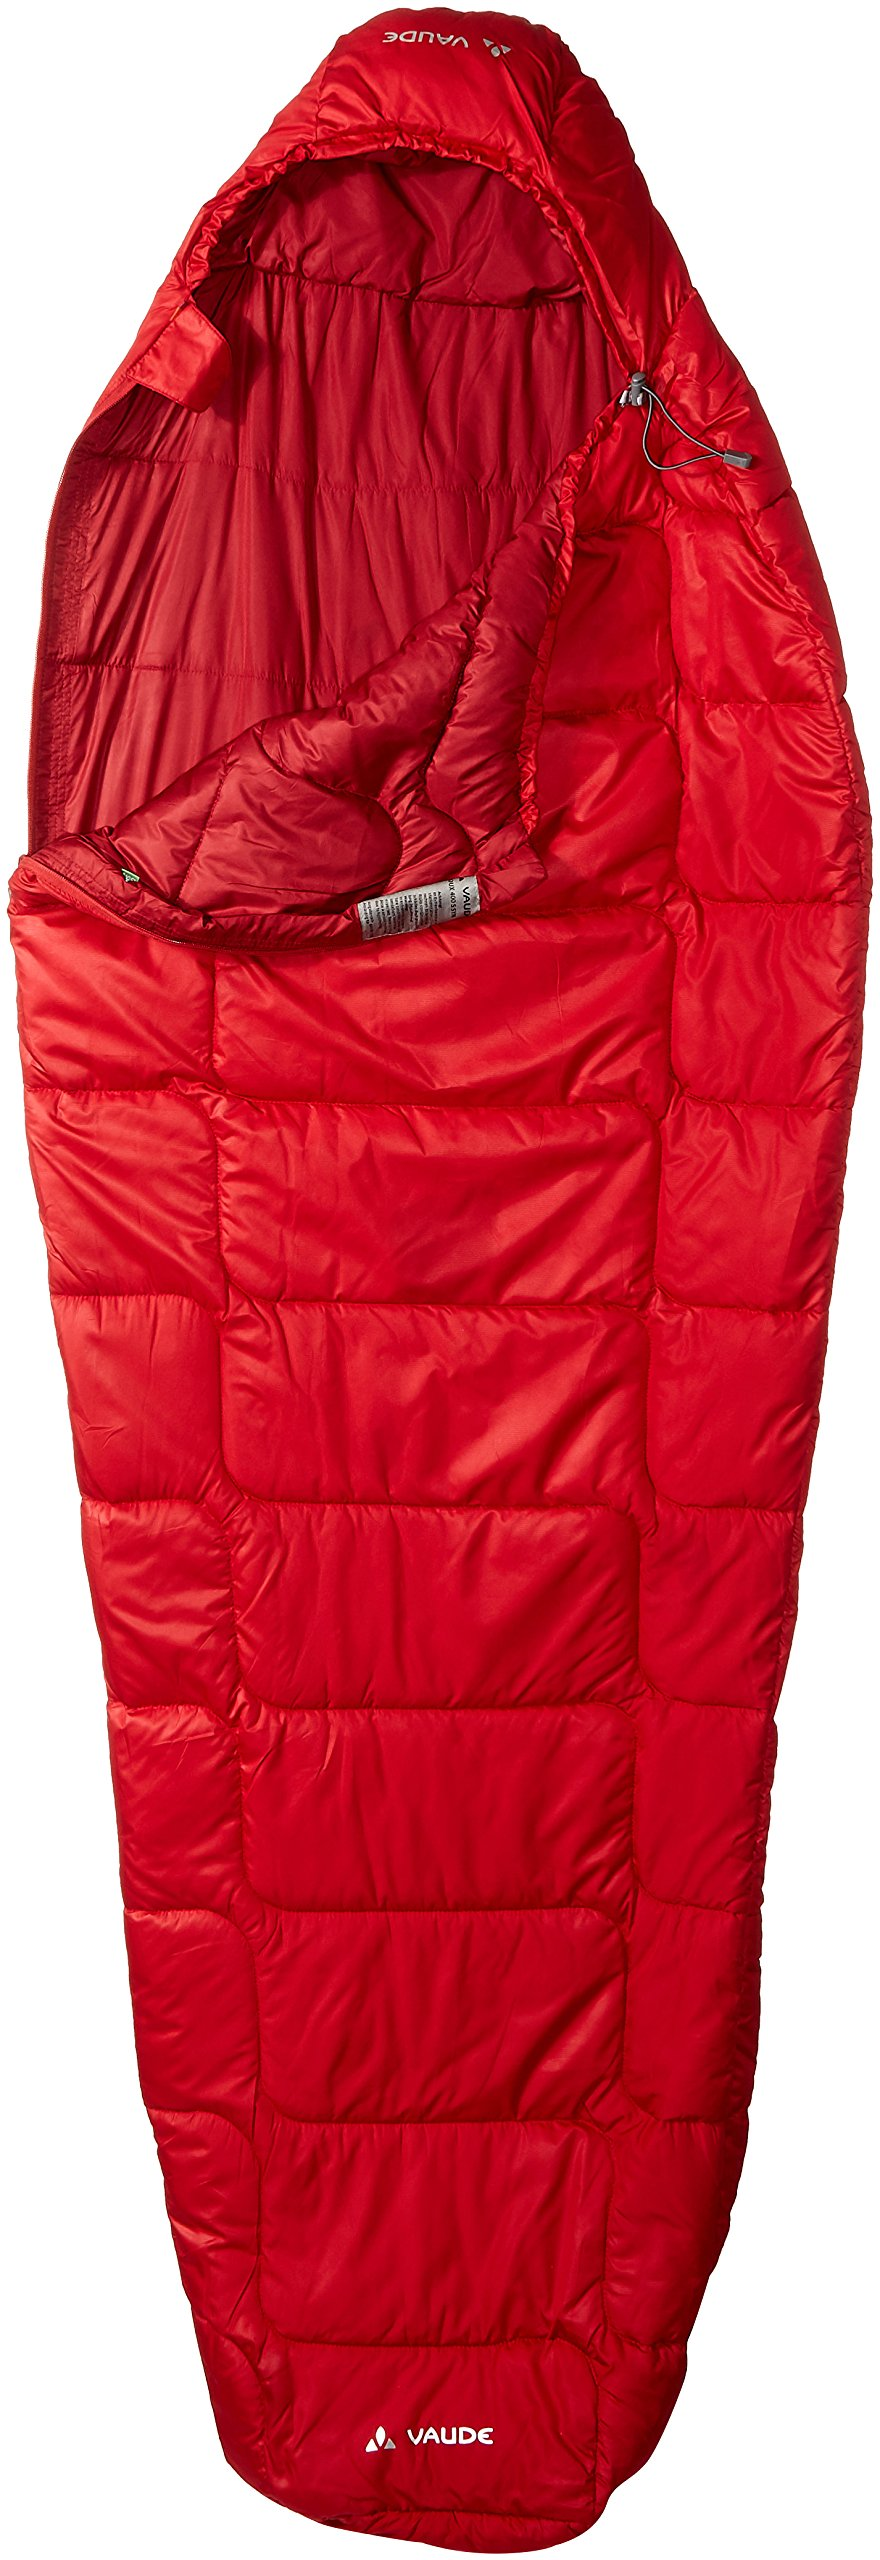 Vaude Women's Sioux 400Syn Sleeping Bag, Dark Indian Red, Left